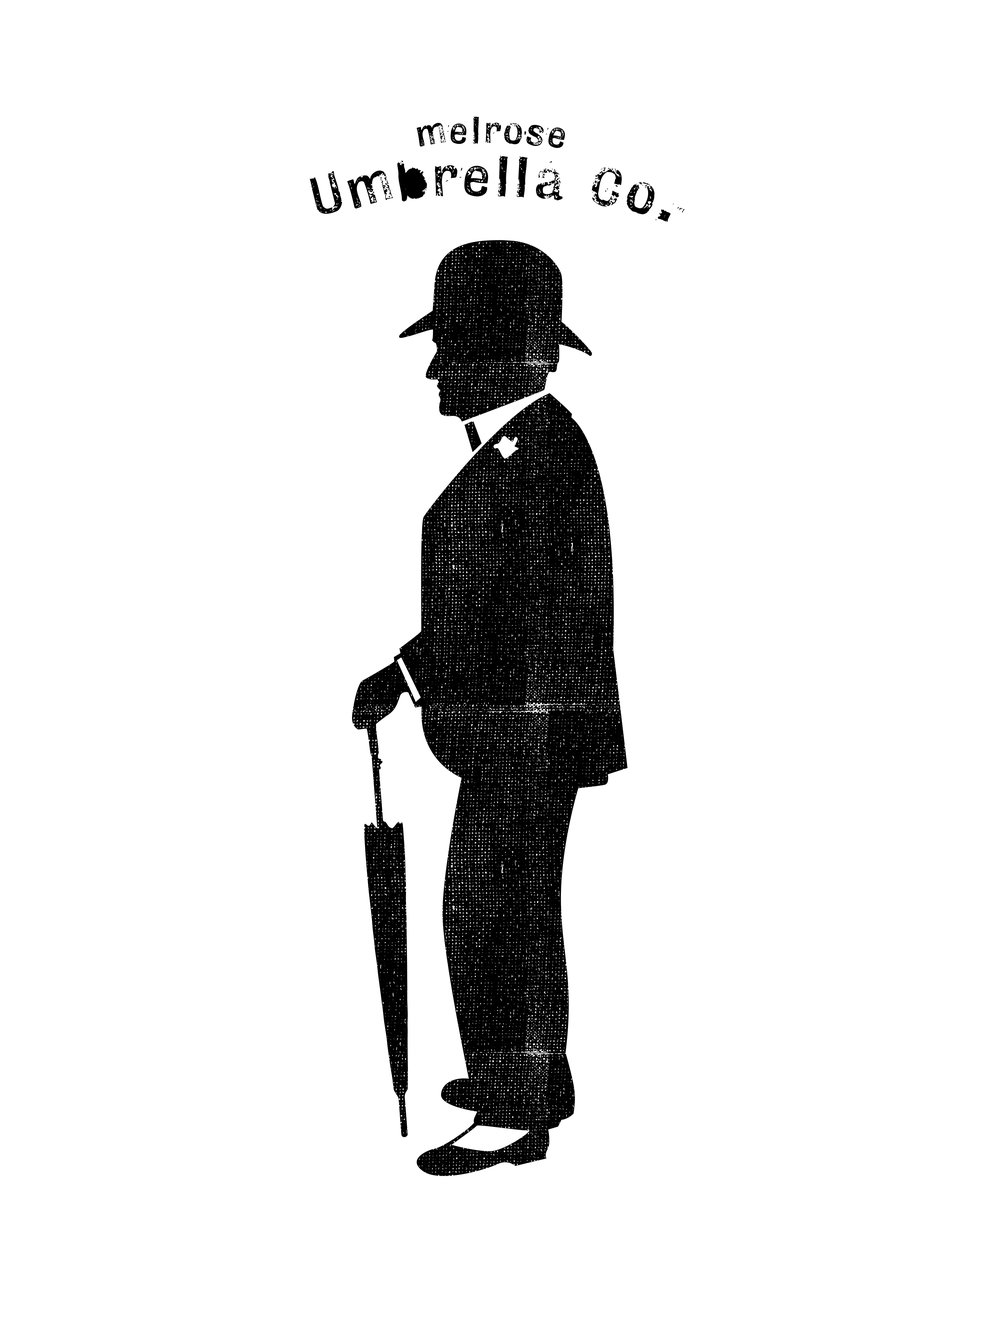 Umbrella_highres.JPG